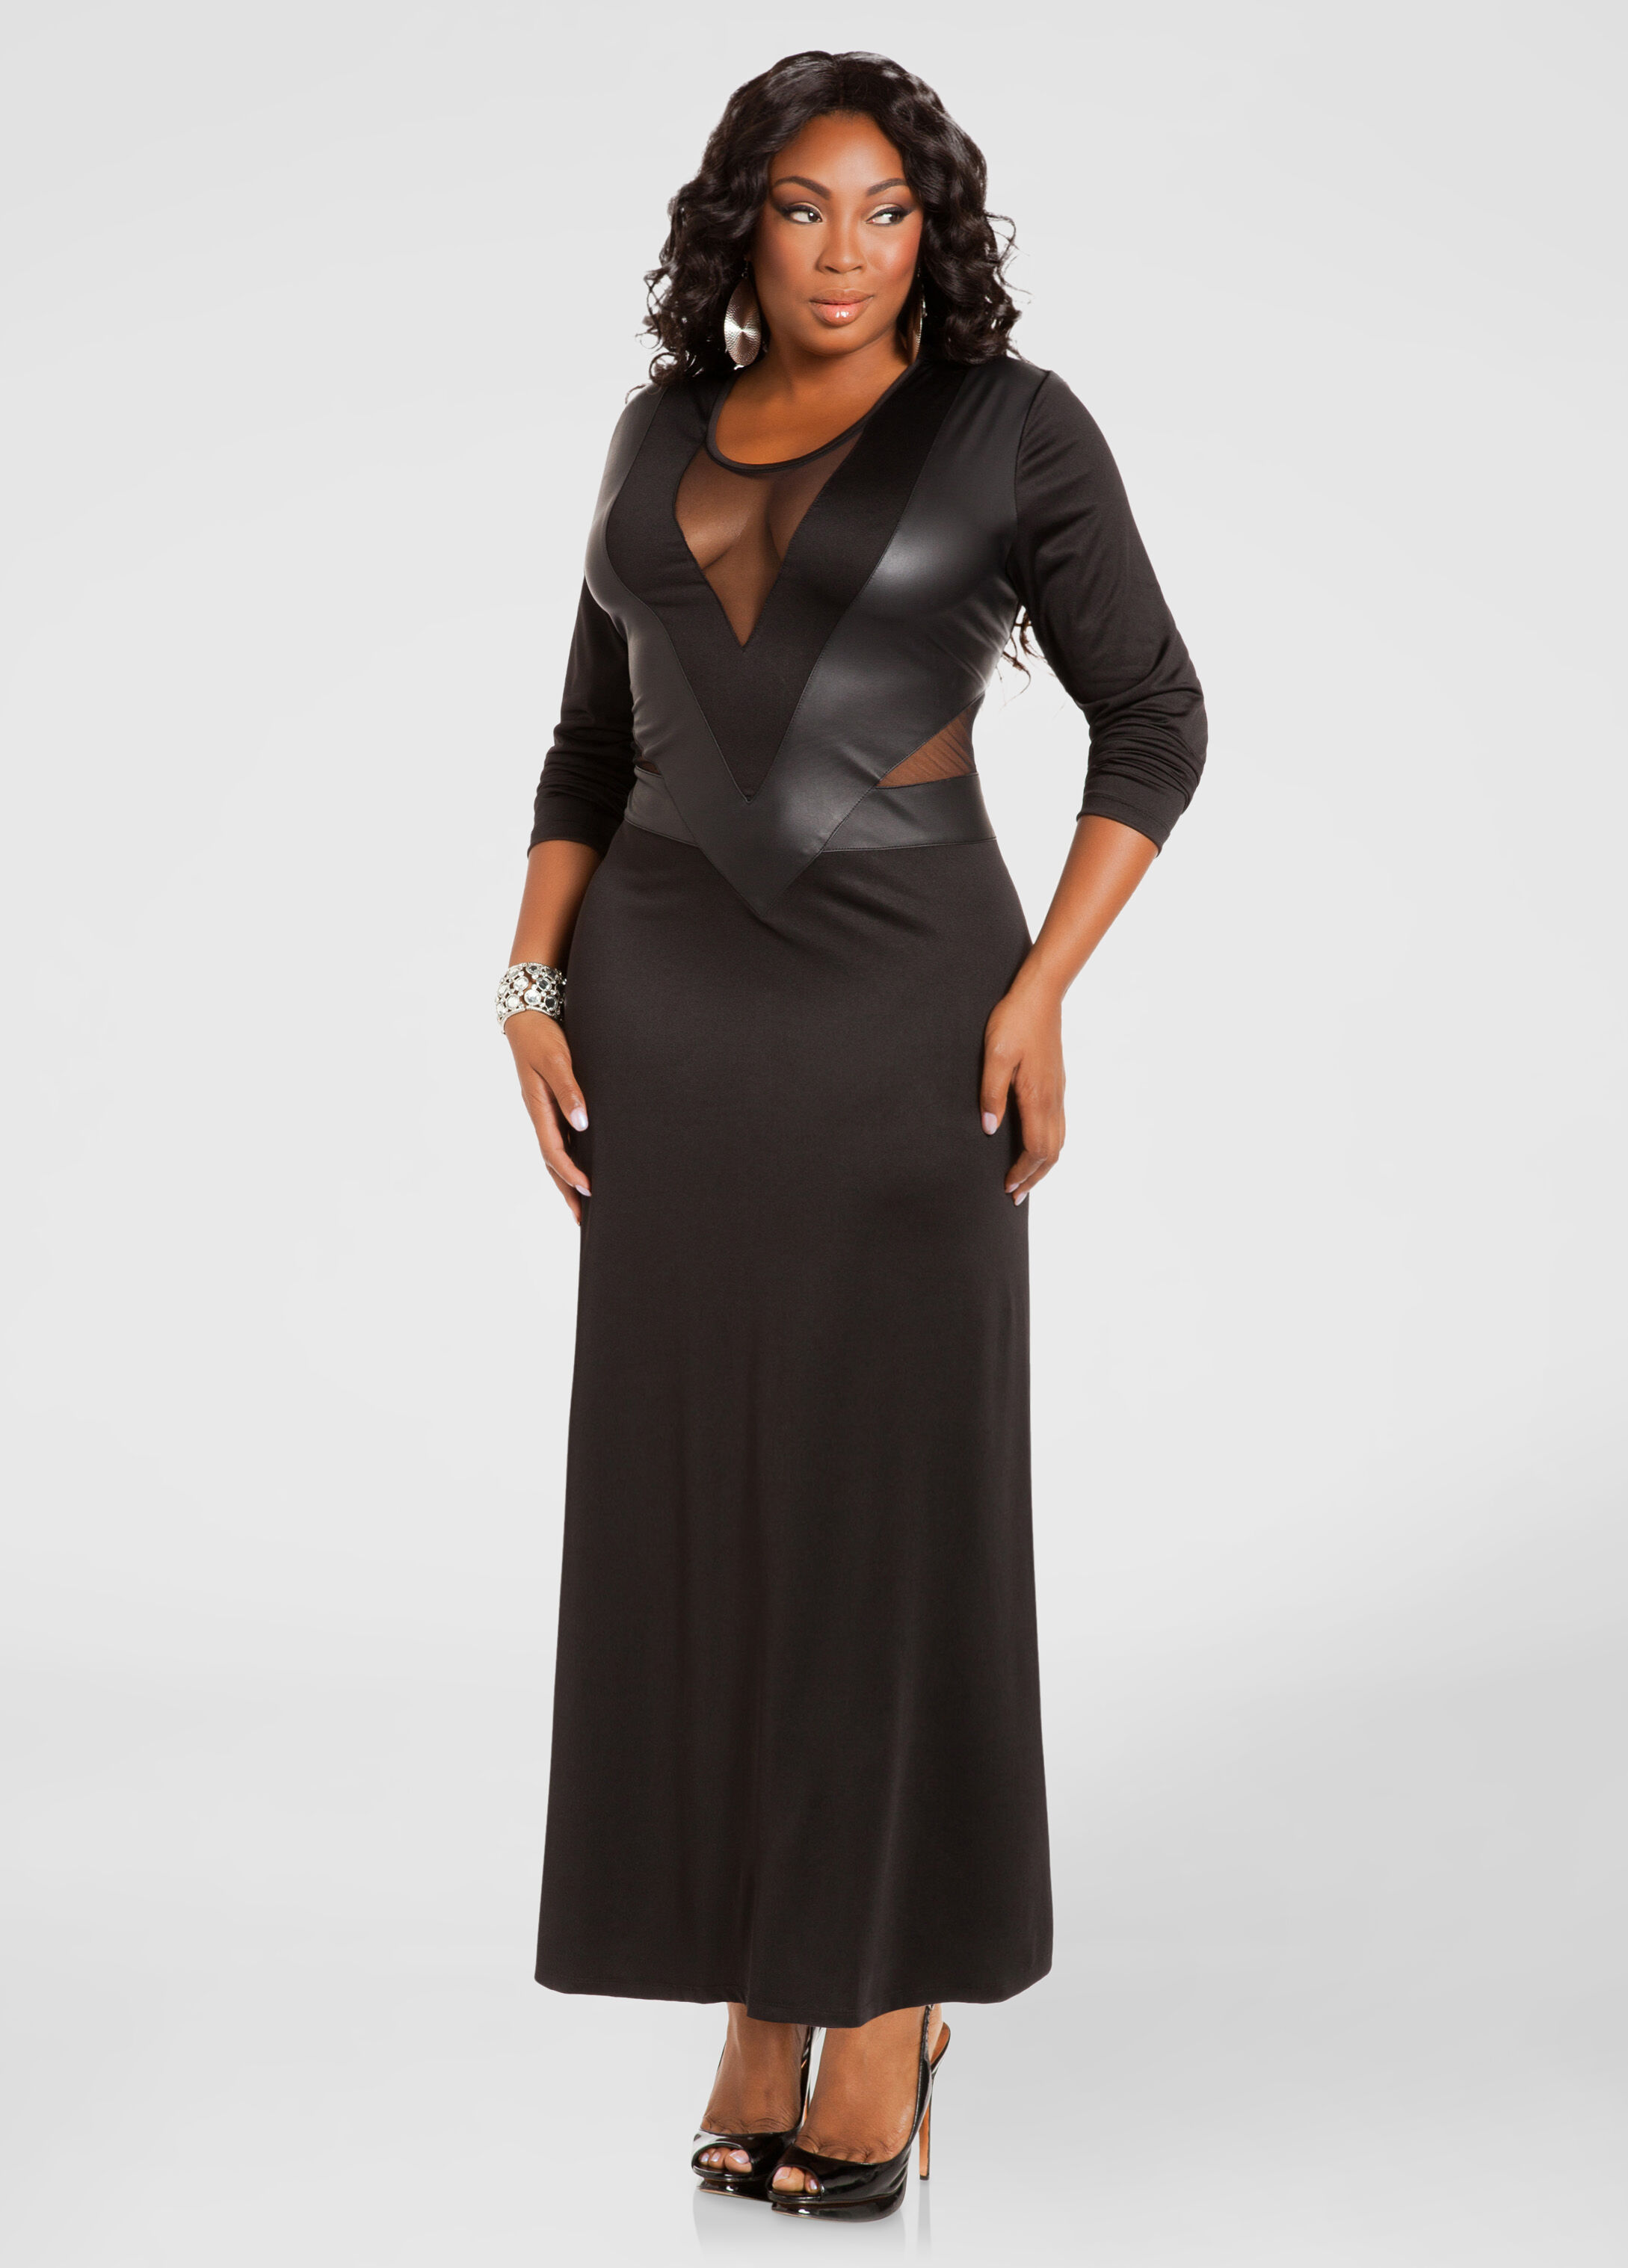 Black maxi dress for plus size